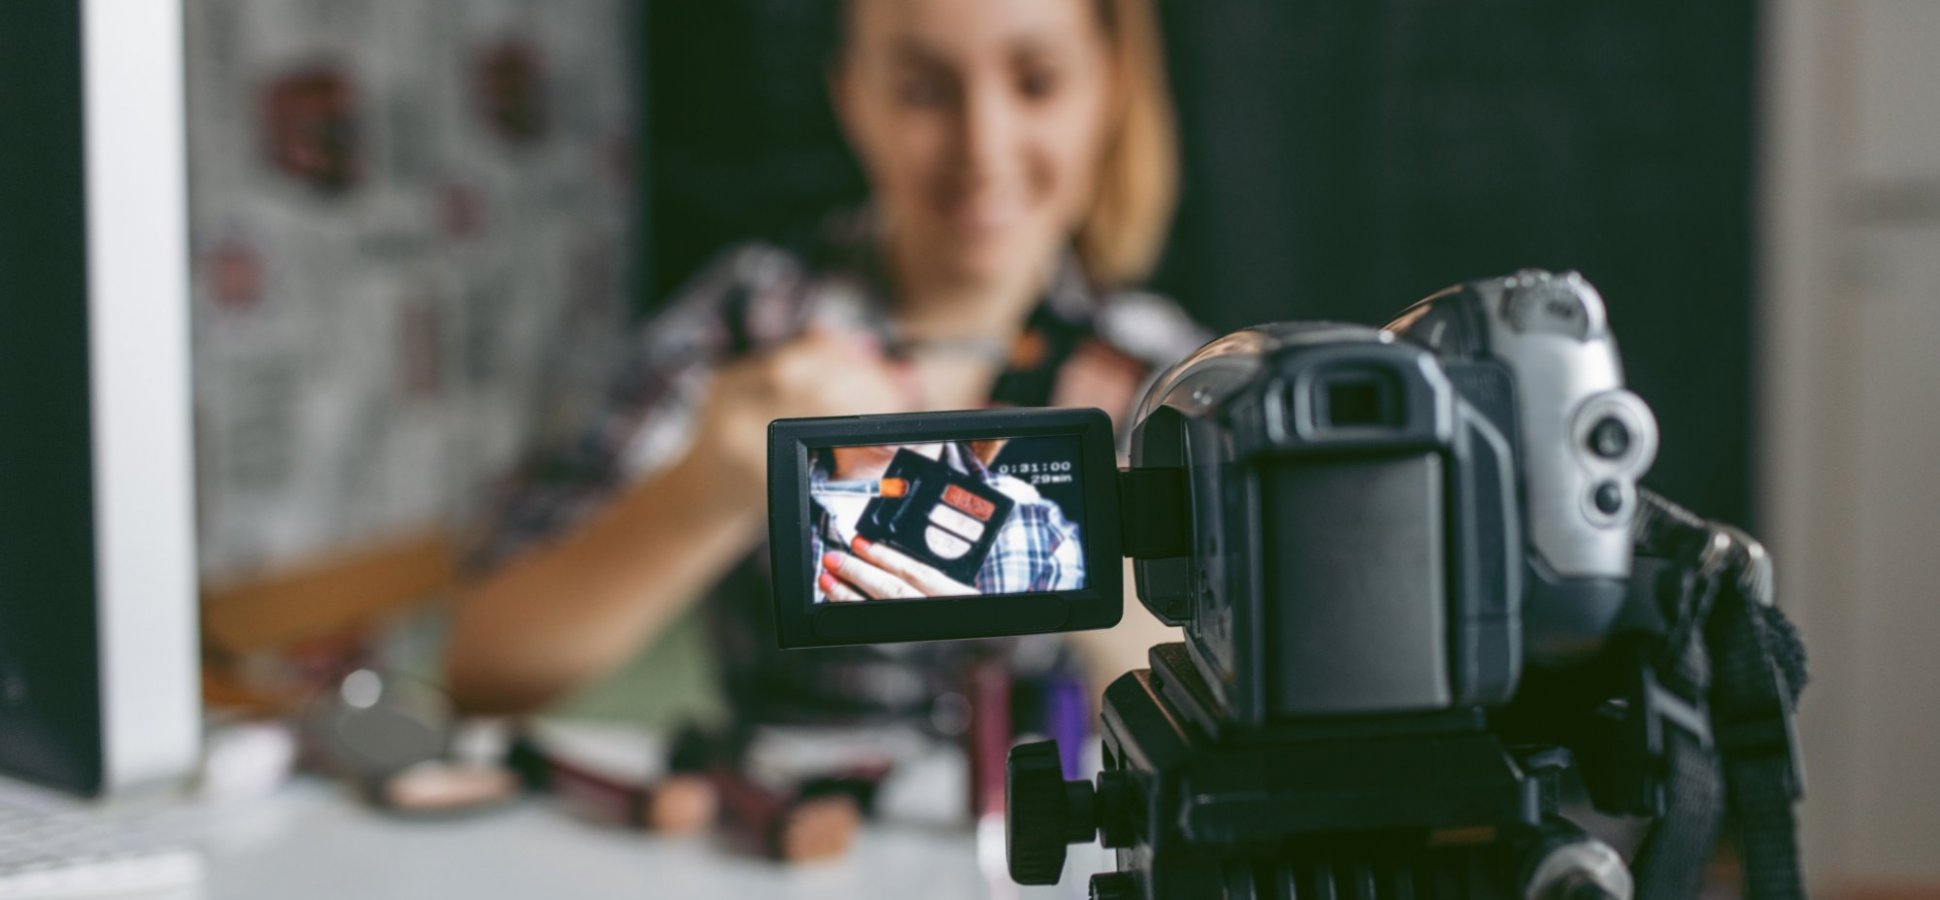 6 Powerful Tools To Drive Your Video Marketing in 2018